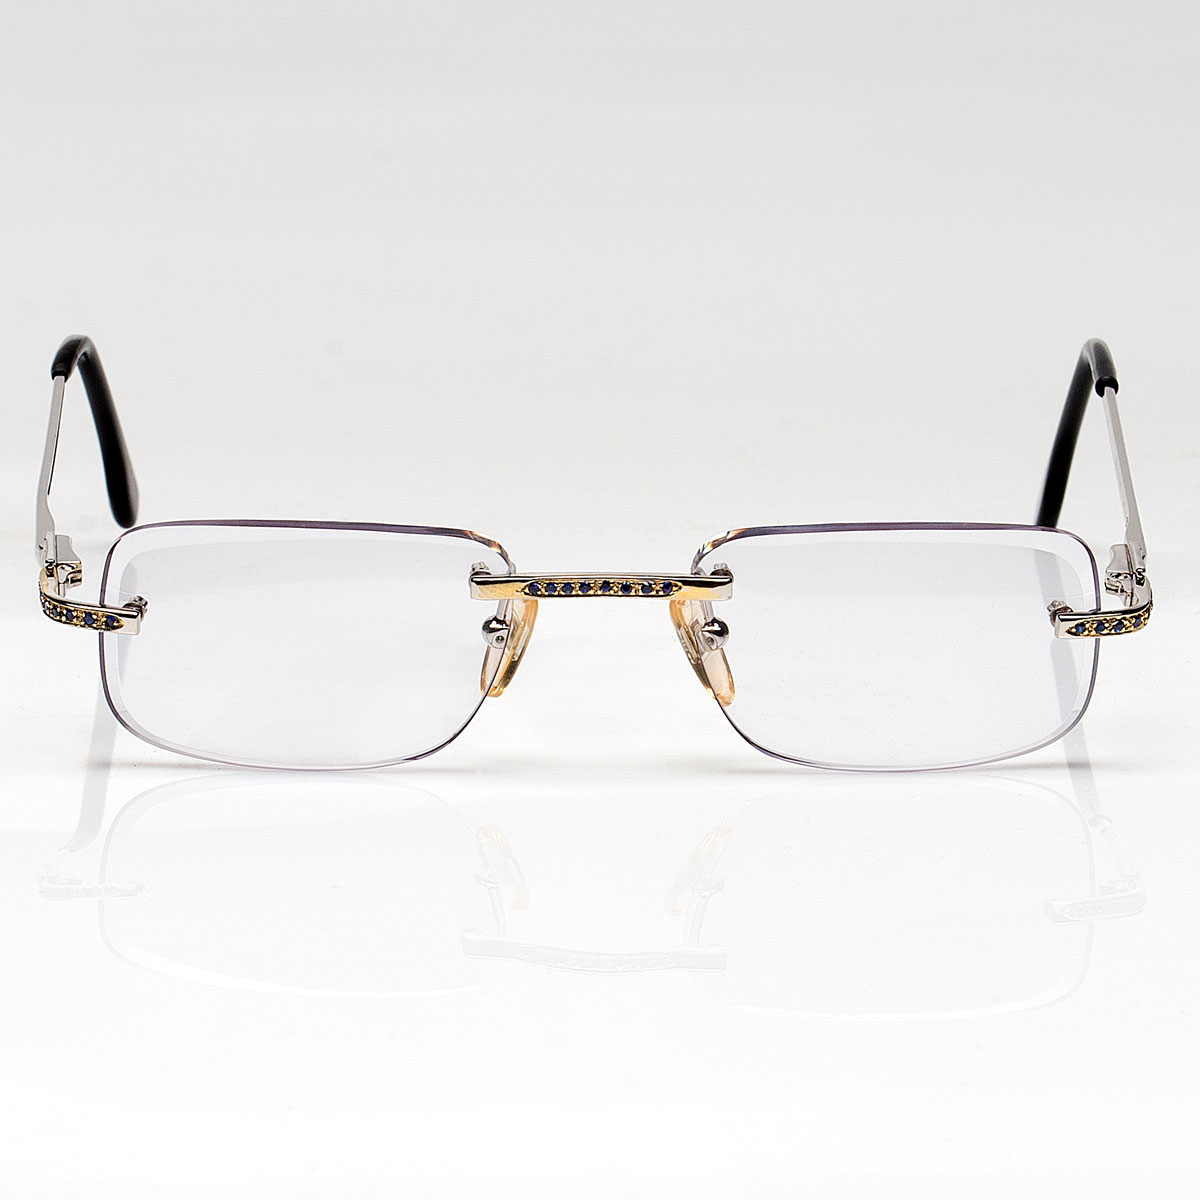 Sandy Luxury Eyewear Frame by David Eden